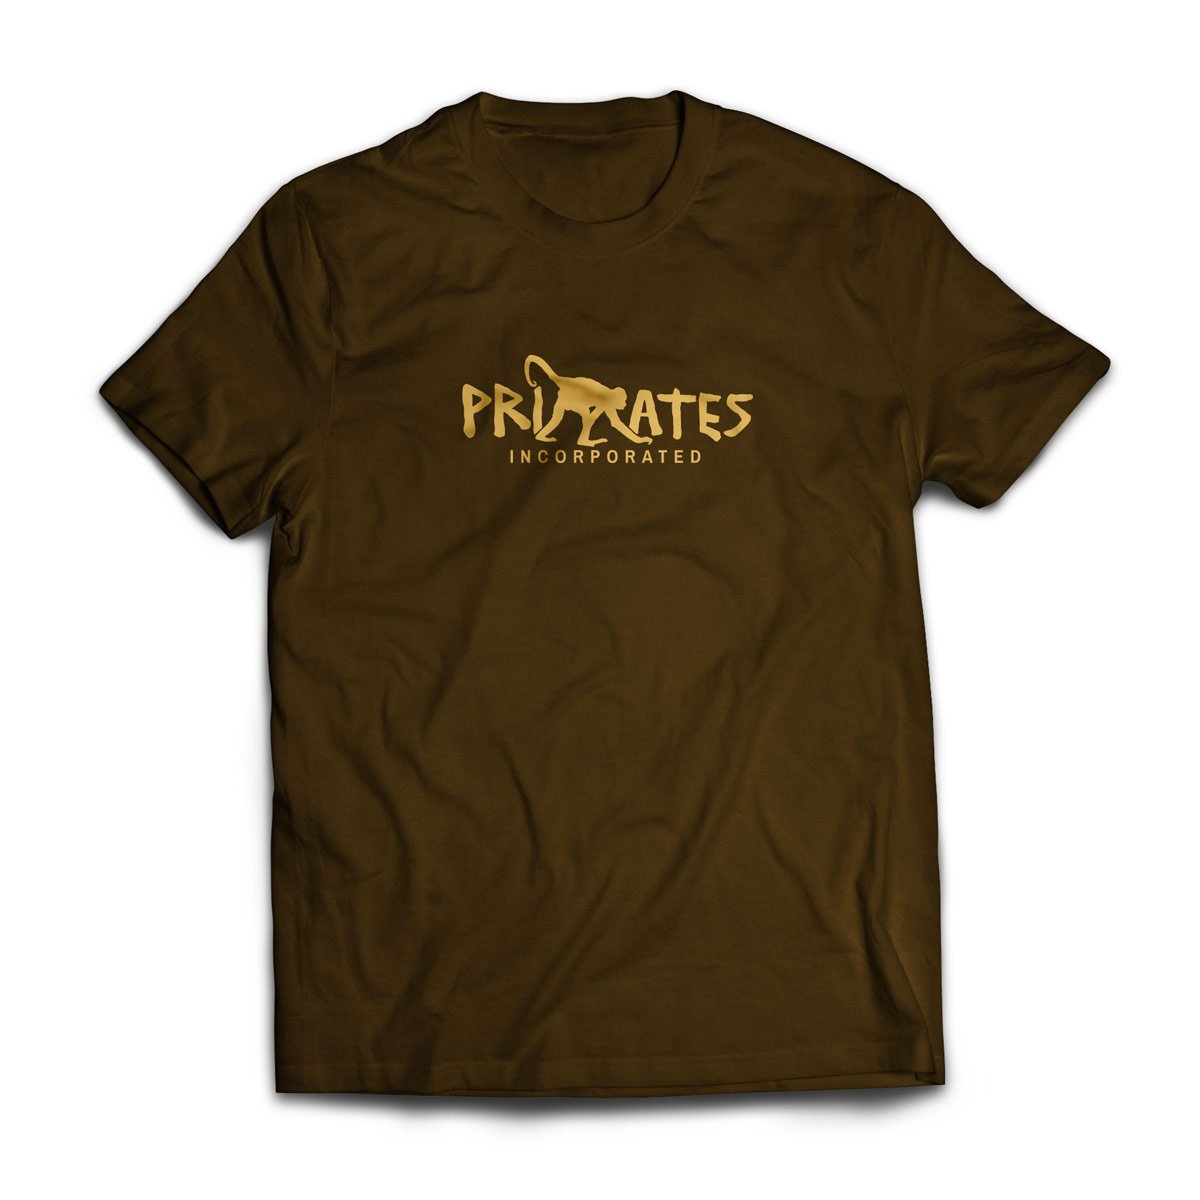 Primates Incorporated logo tshirt